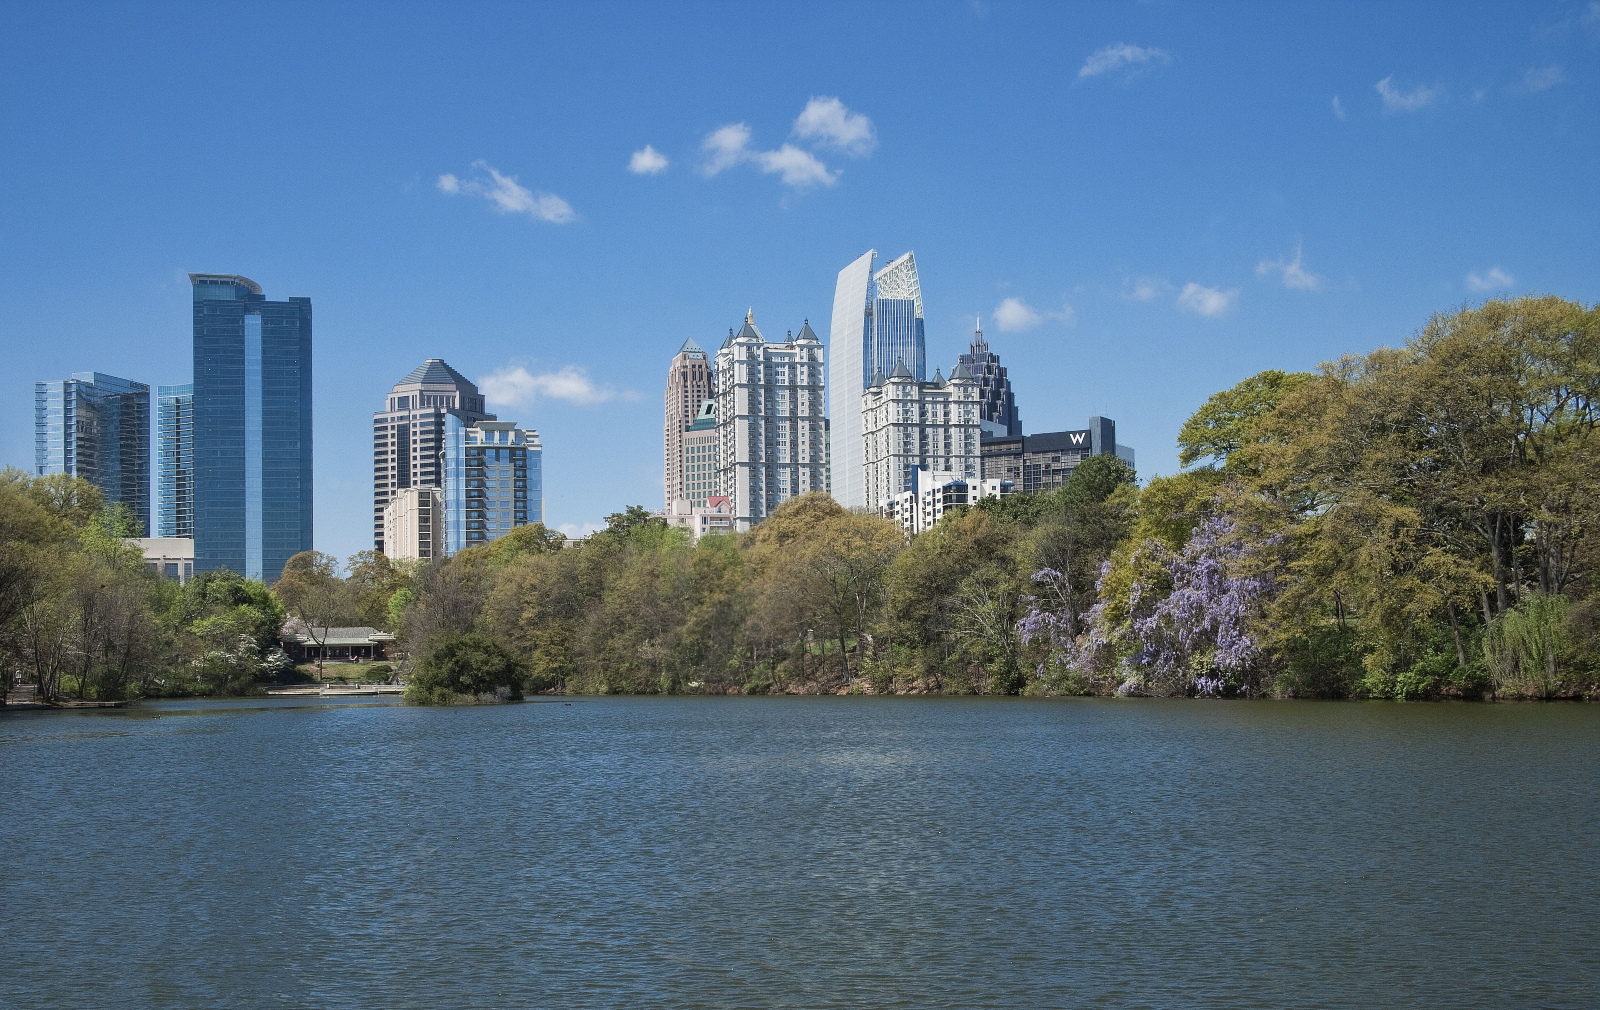 The Midtown skyline sits behind the lake at Piedmont Park.